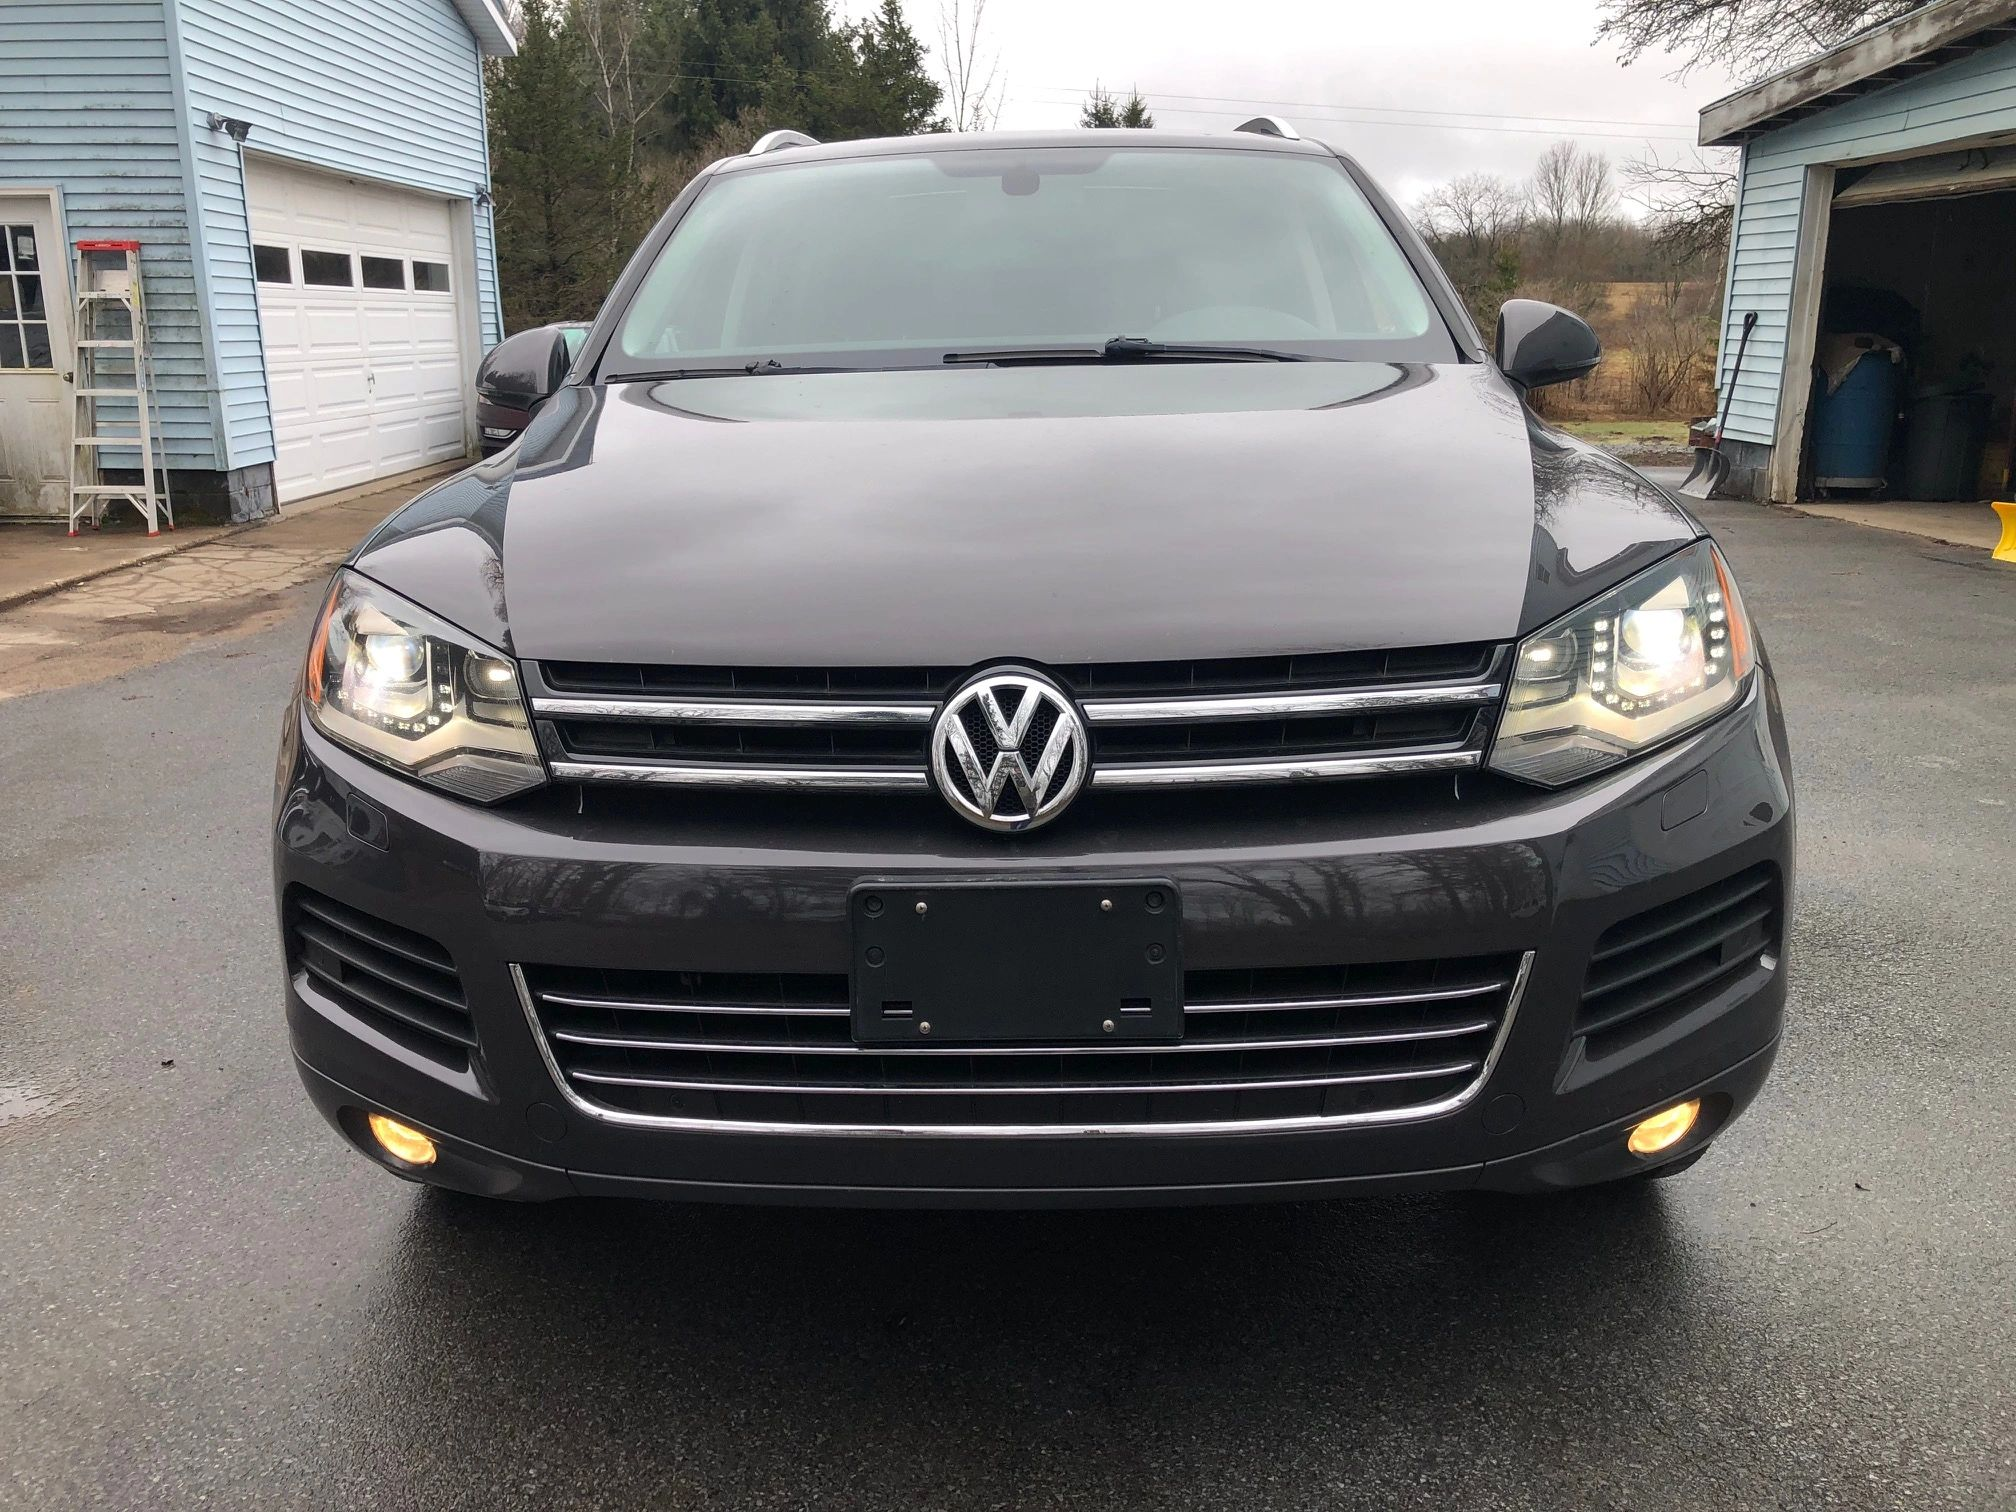 2012 Volkswagon Touareg V6 TDI Diesel ,Panoramic roof, Quiet, Smooth , Powerful, Clean Diesel,